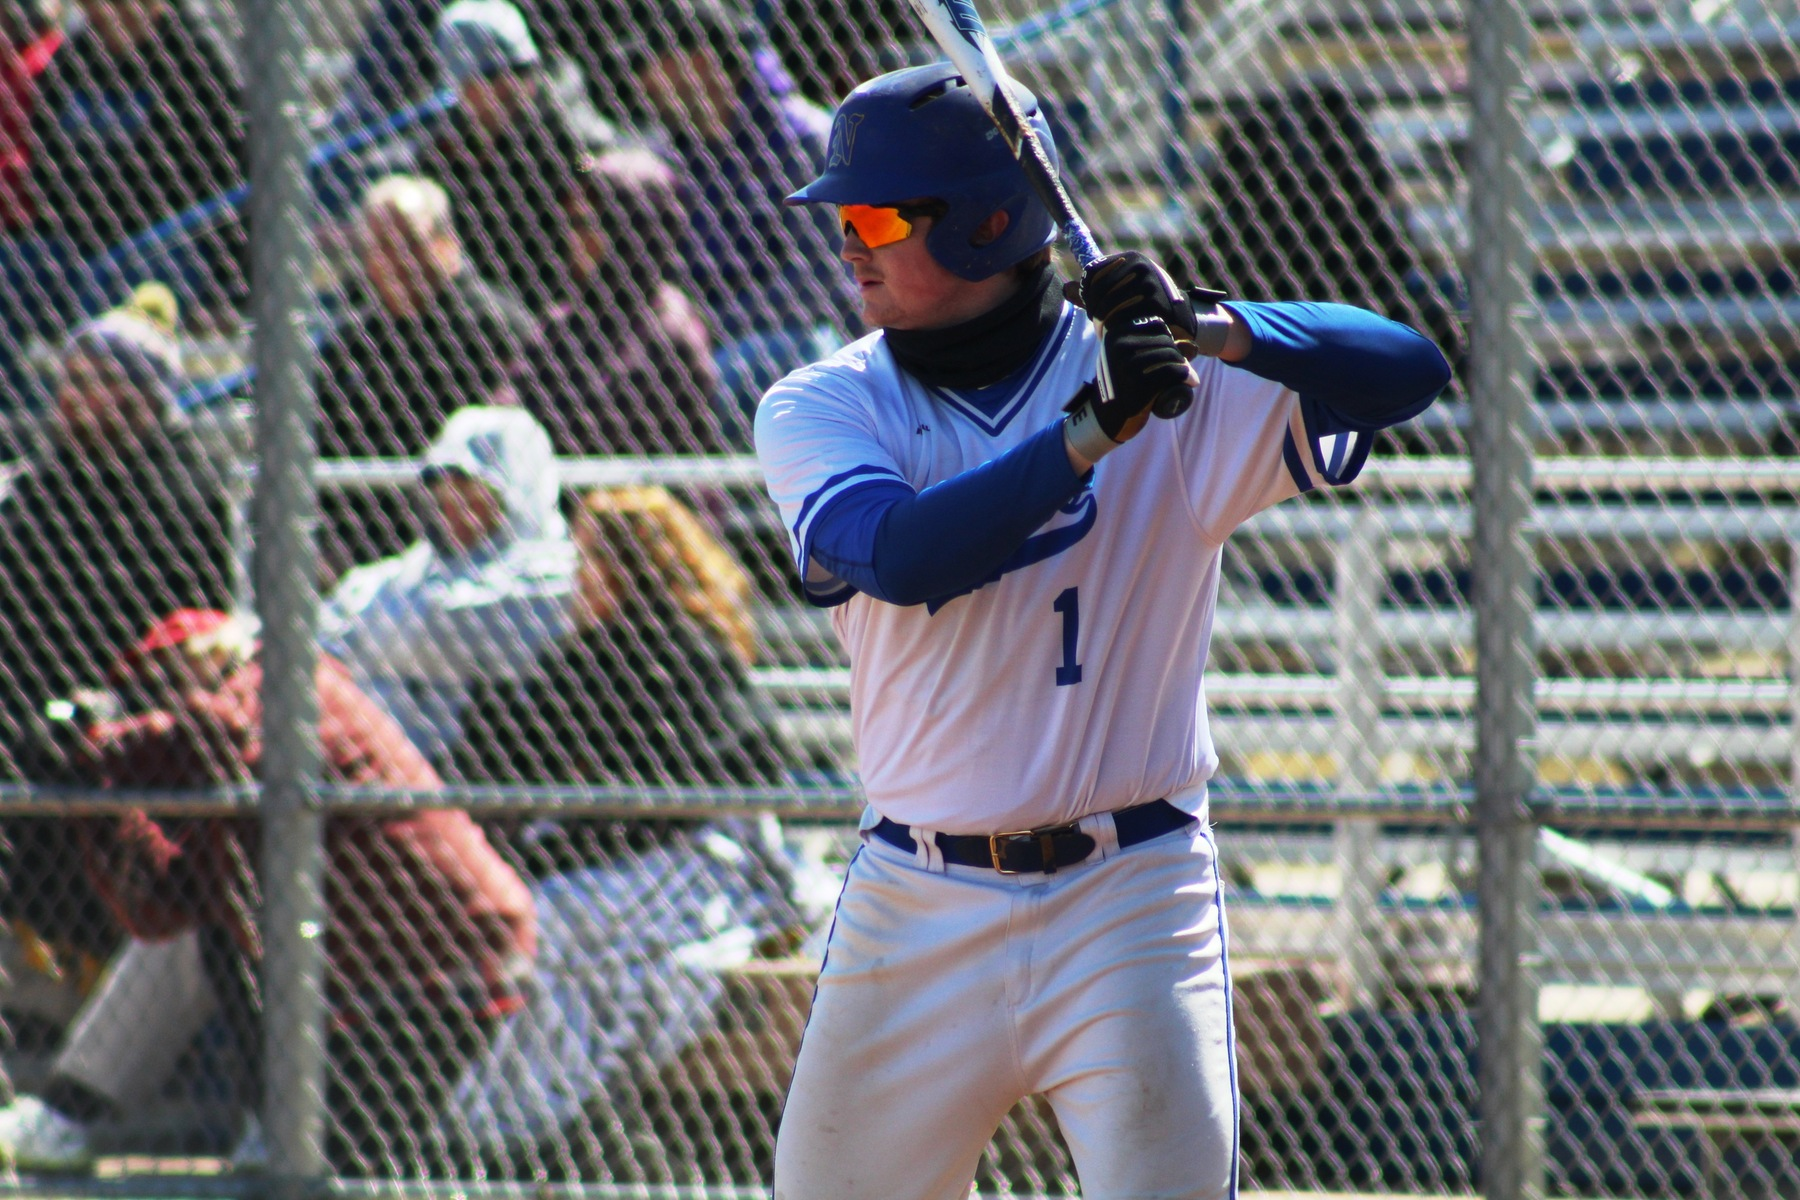 NIACC's Fox Leum bats in first game of last Saturday's doubleheader at DMACC.